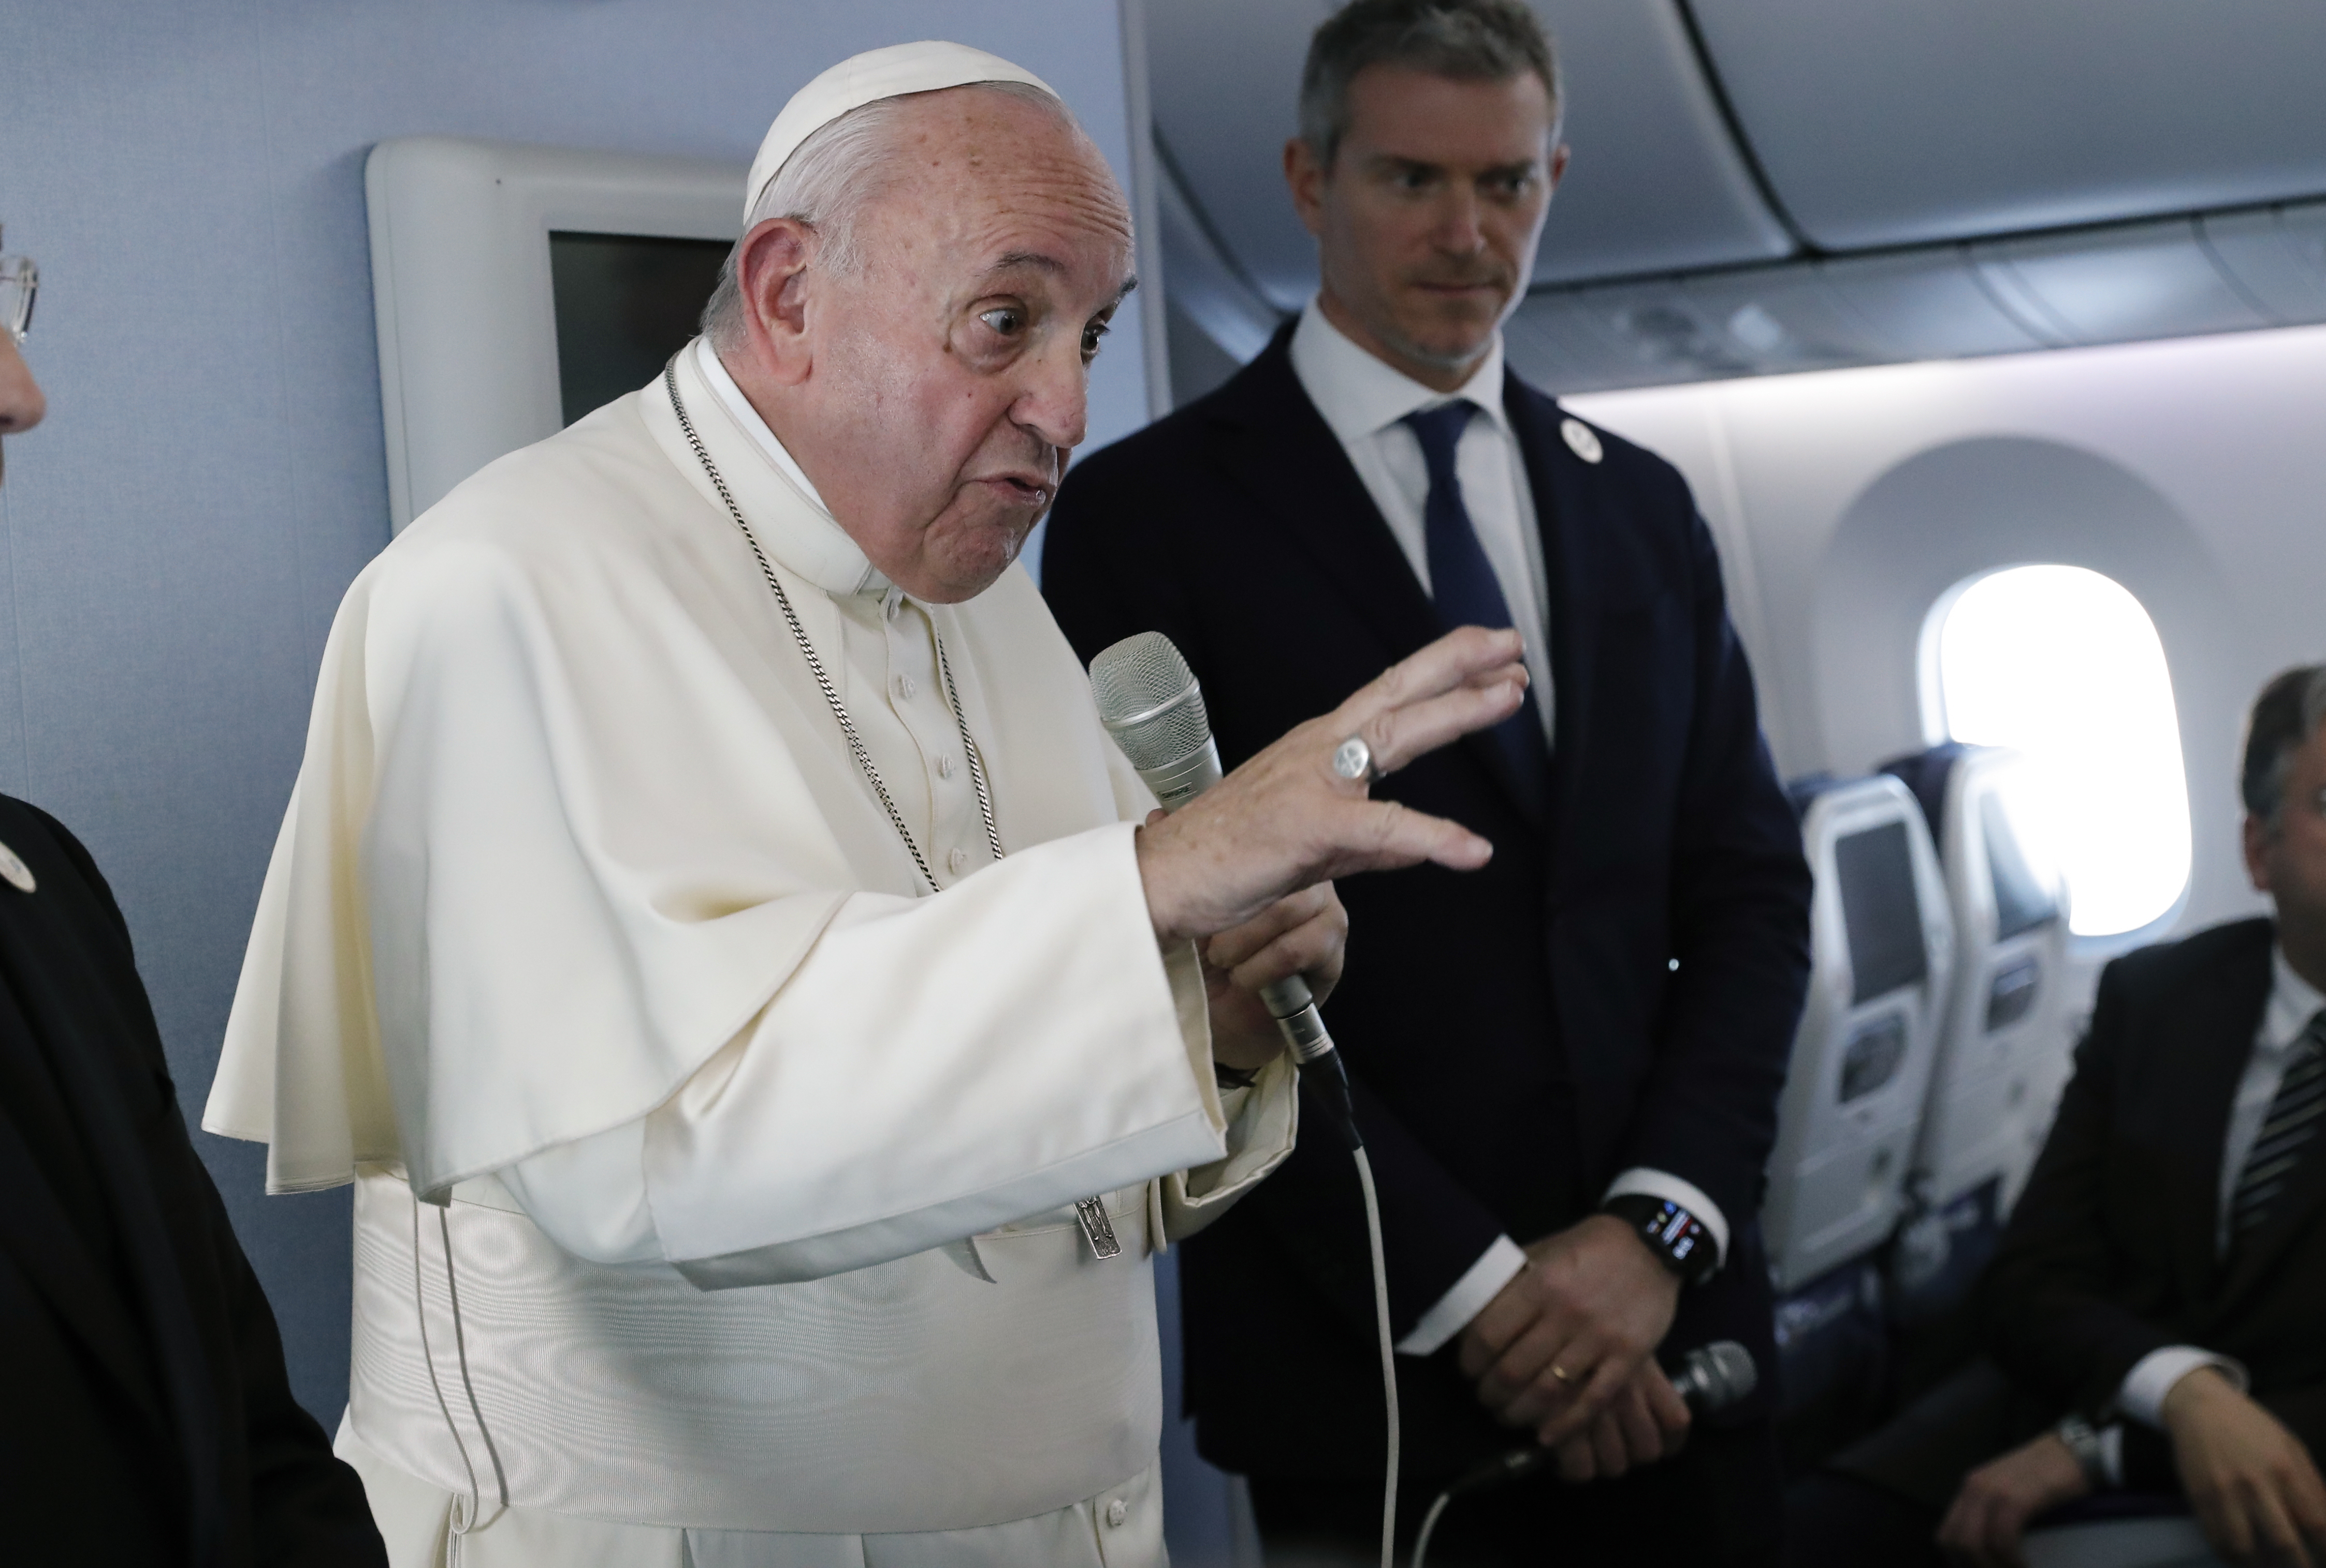 Pope Francis speaks during a news conference onboard the papal plane on his flight back from a trip to Thailand and Japan, Monday, Nov. 26, 2019.